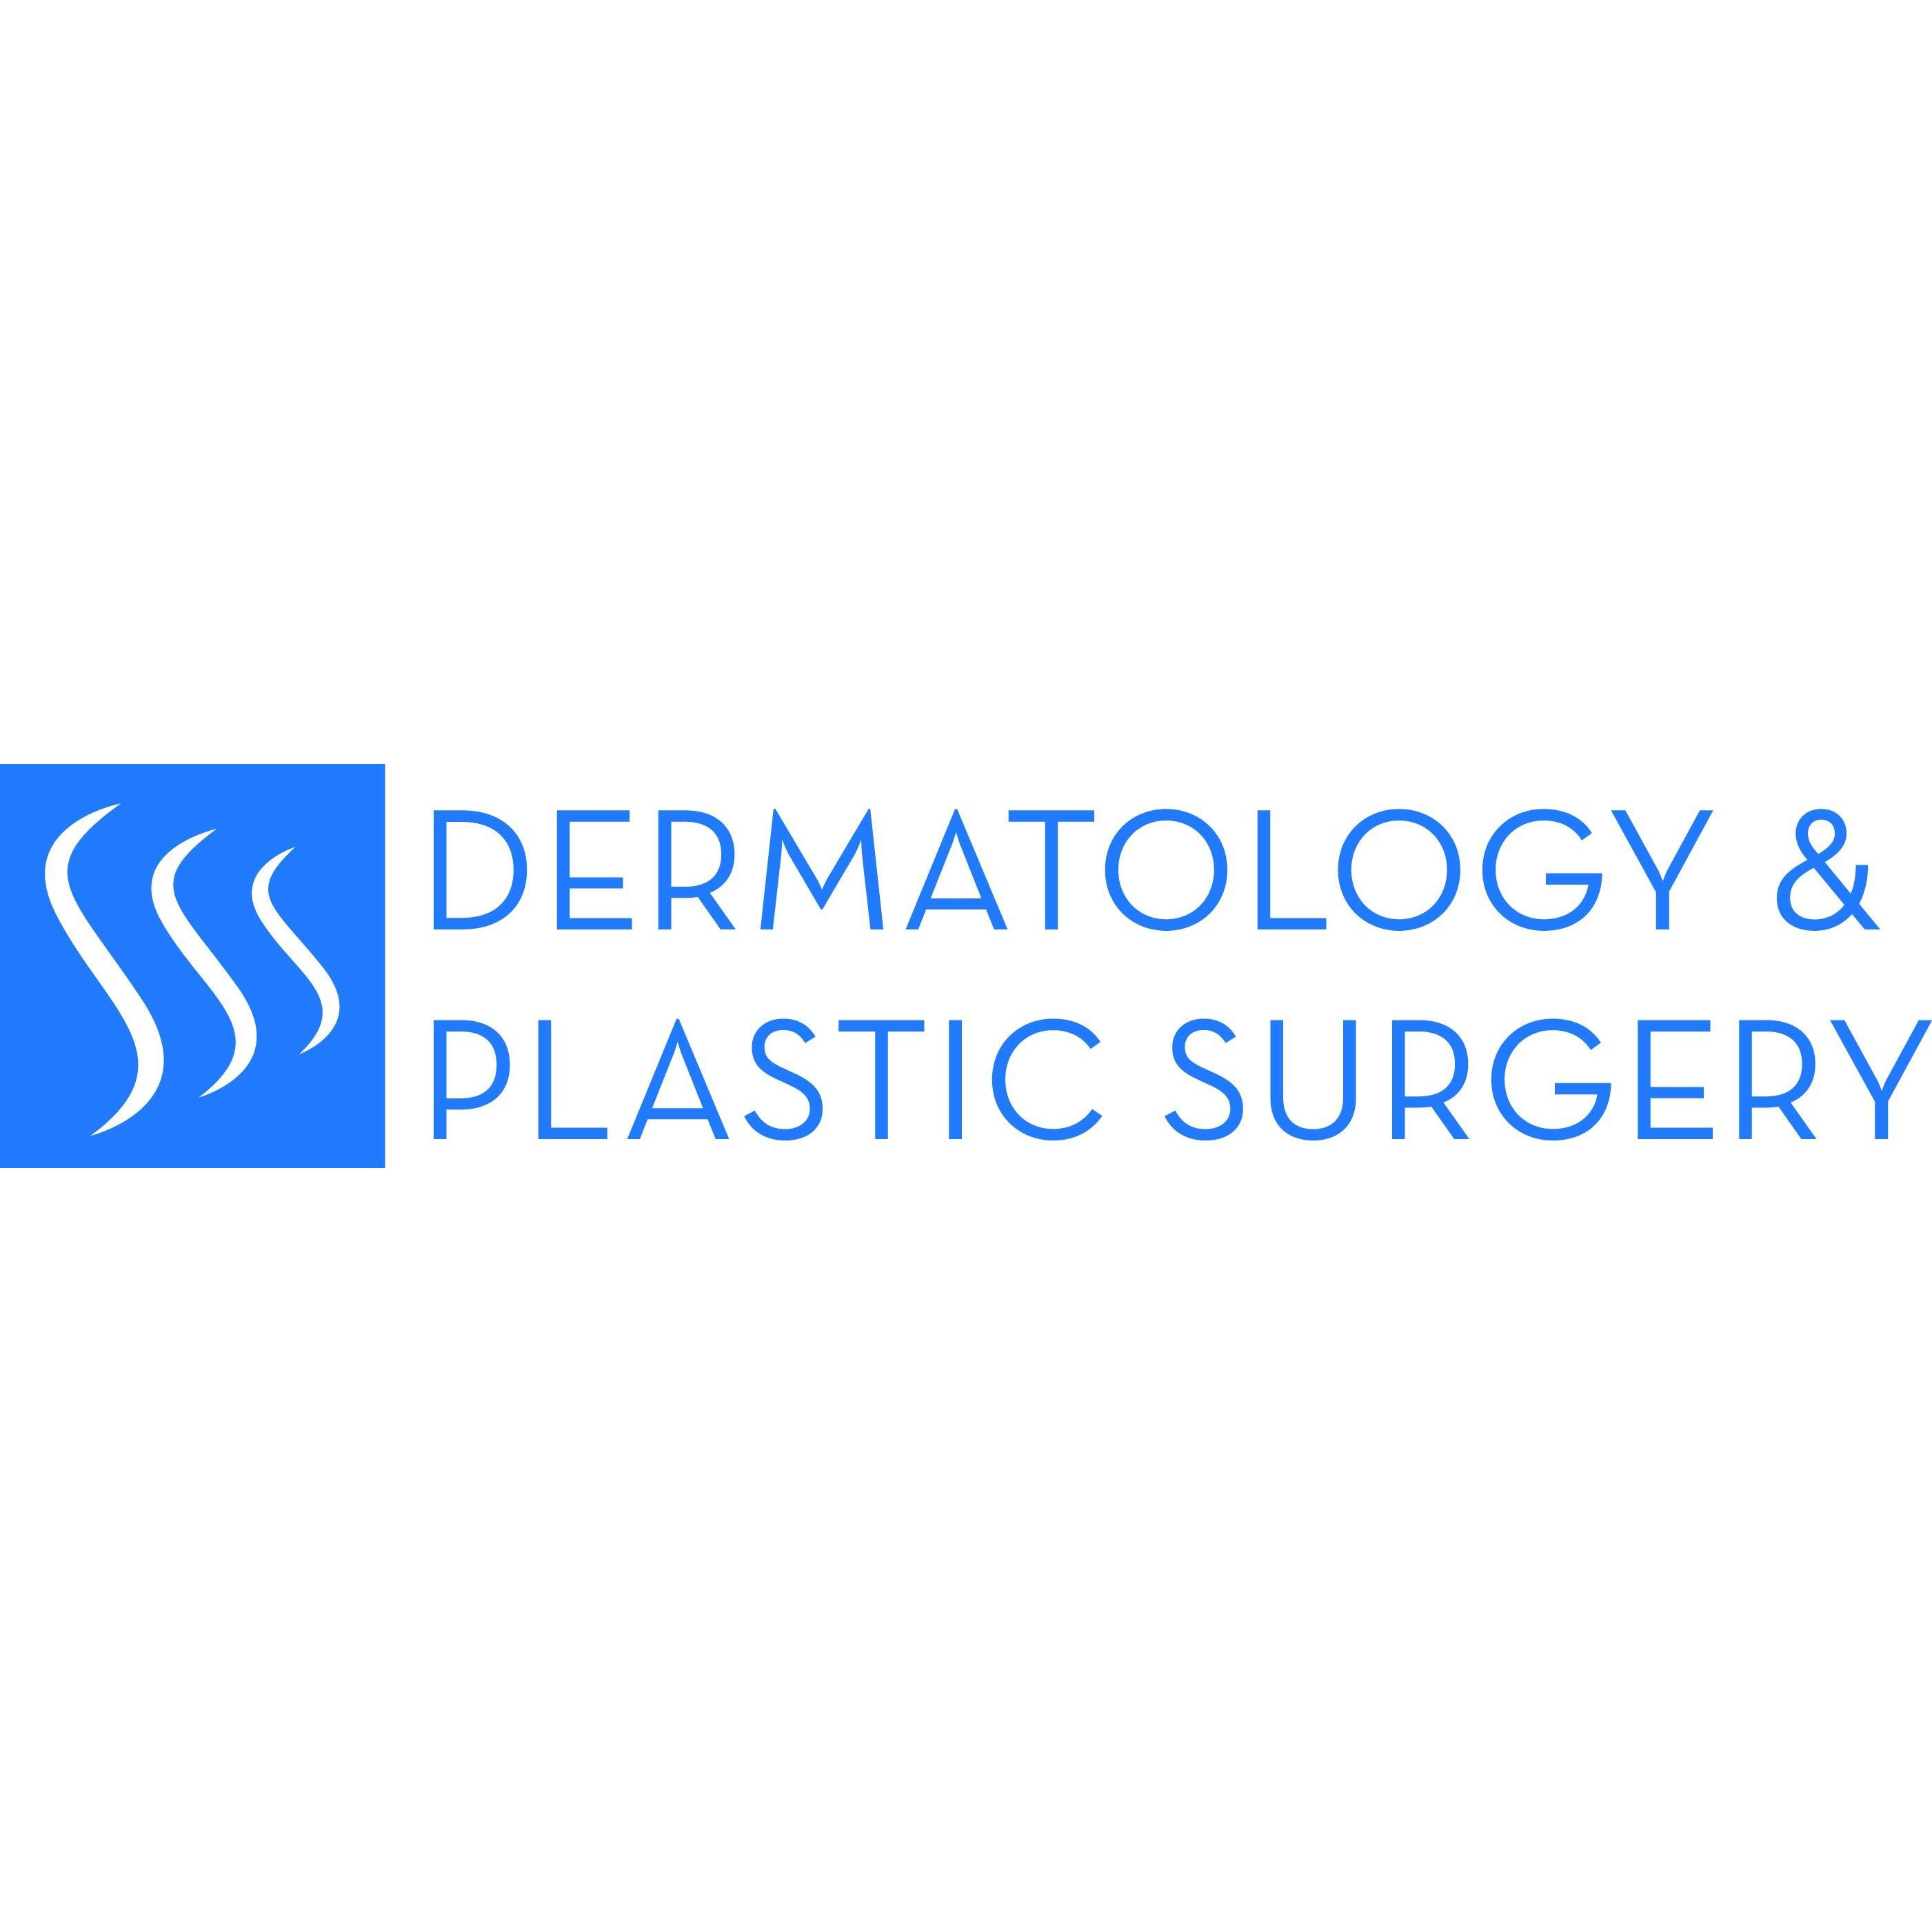 Dermatology & Plastic Surgery